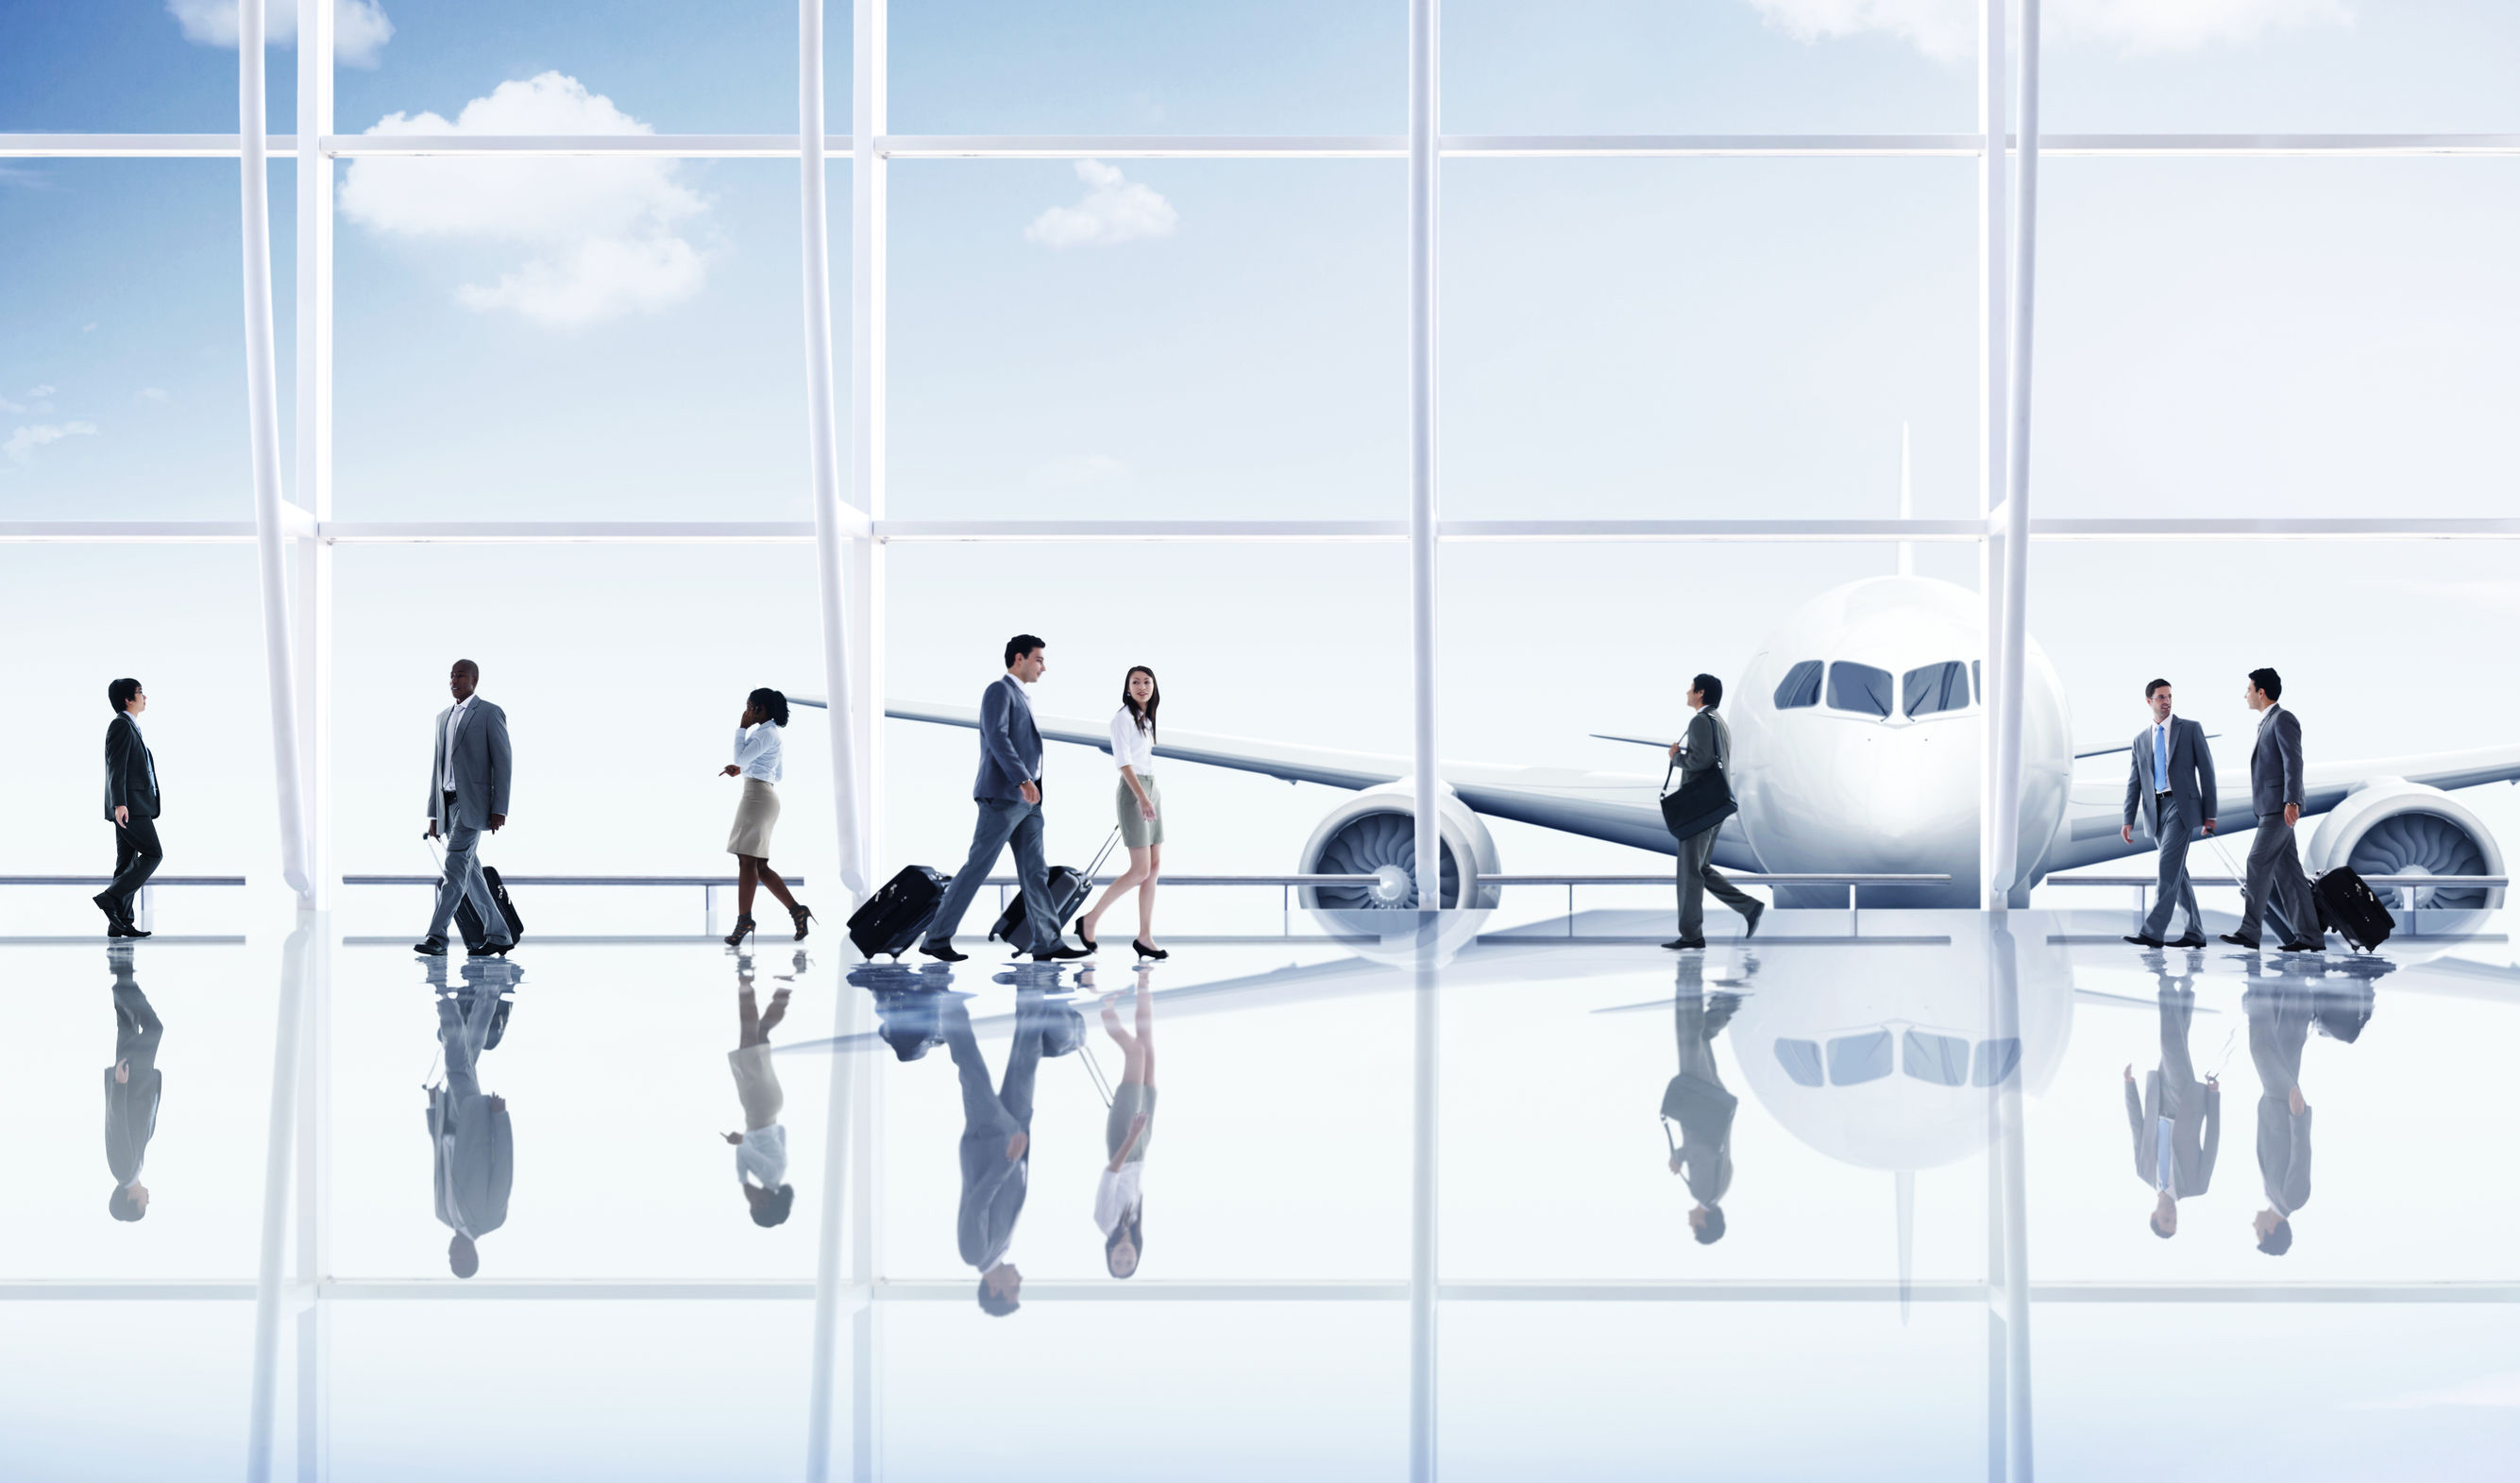 Project-Based Business Trips are Costlier Than Traditional ...